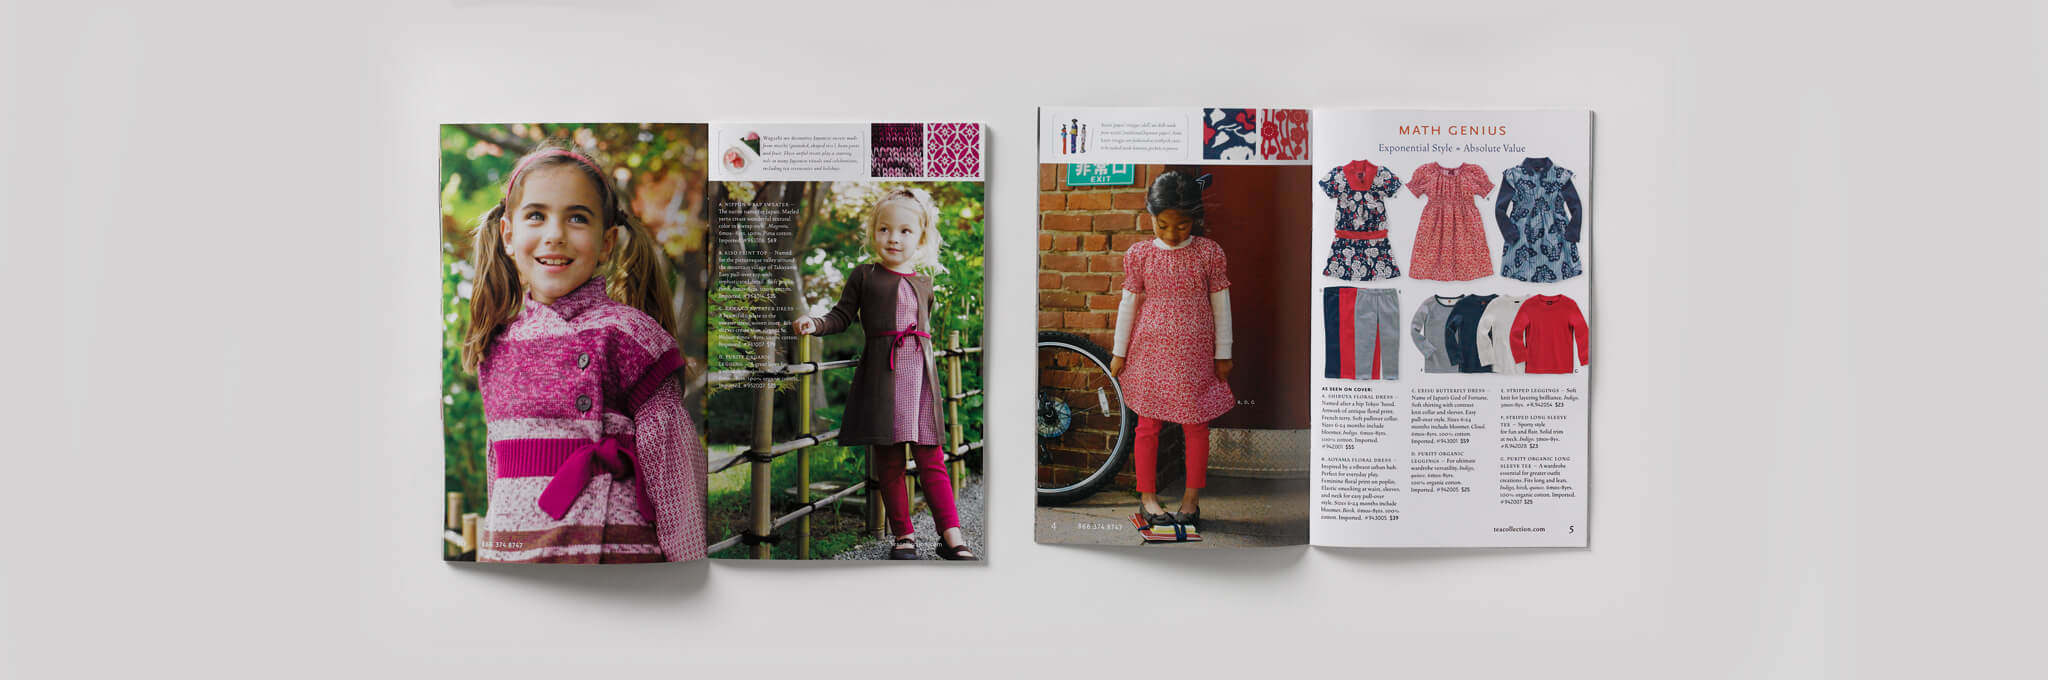 2 open catalogs featuring children and children's clothing